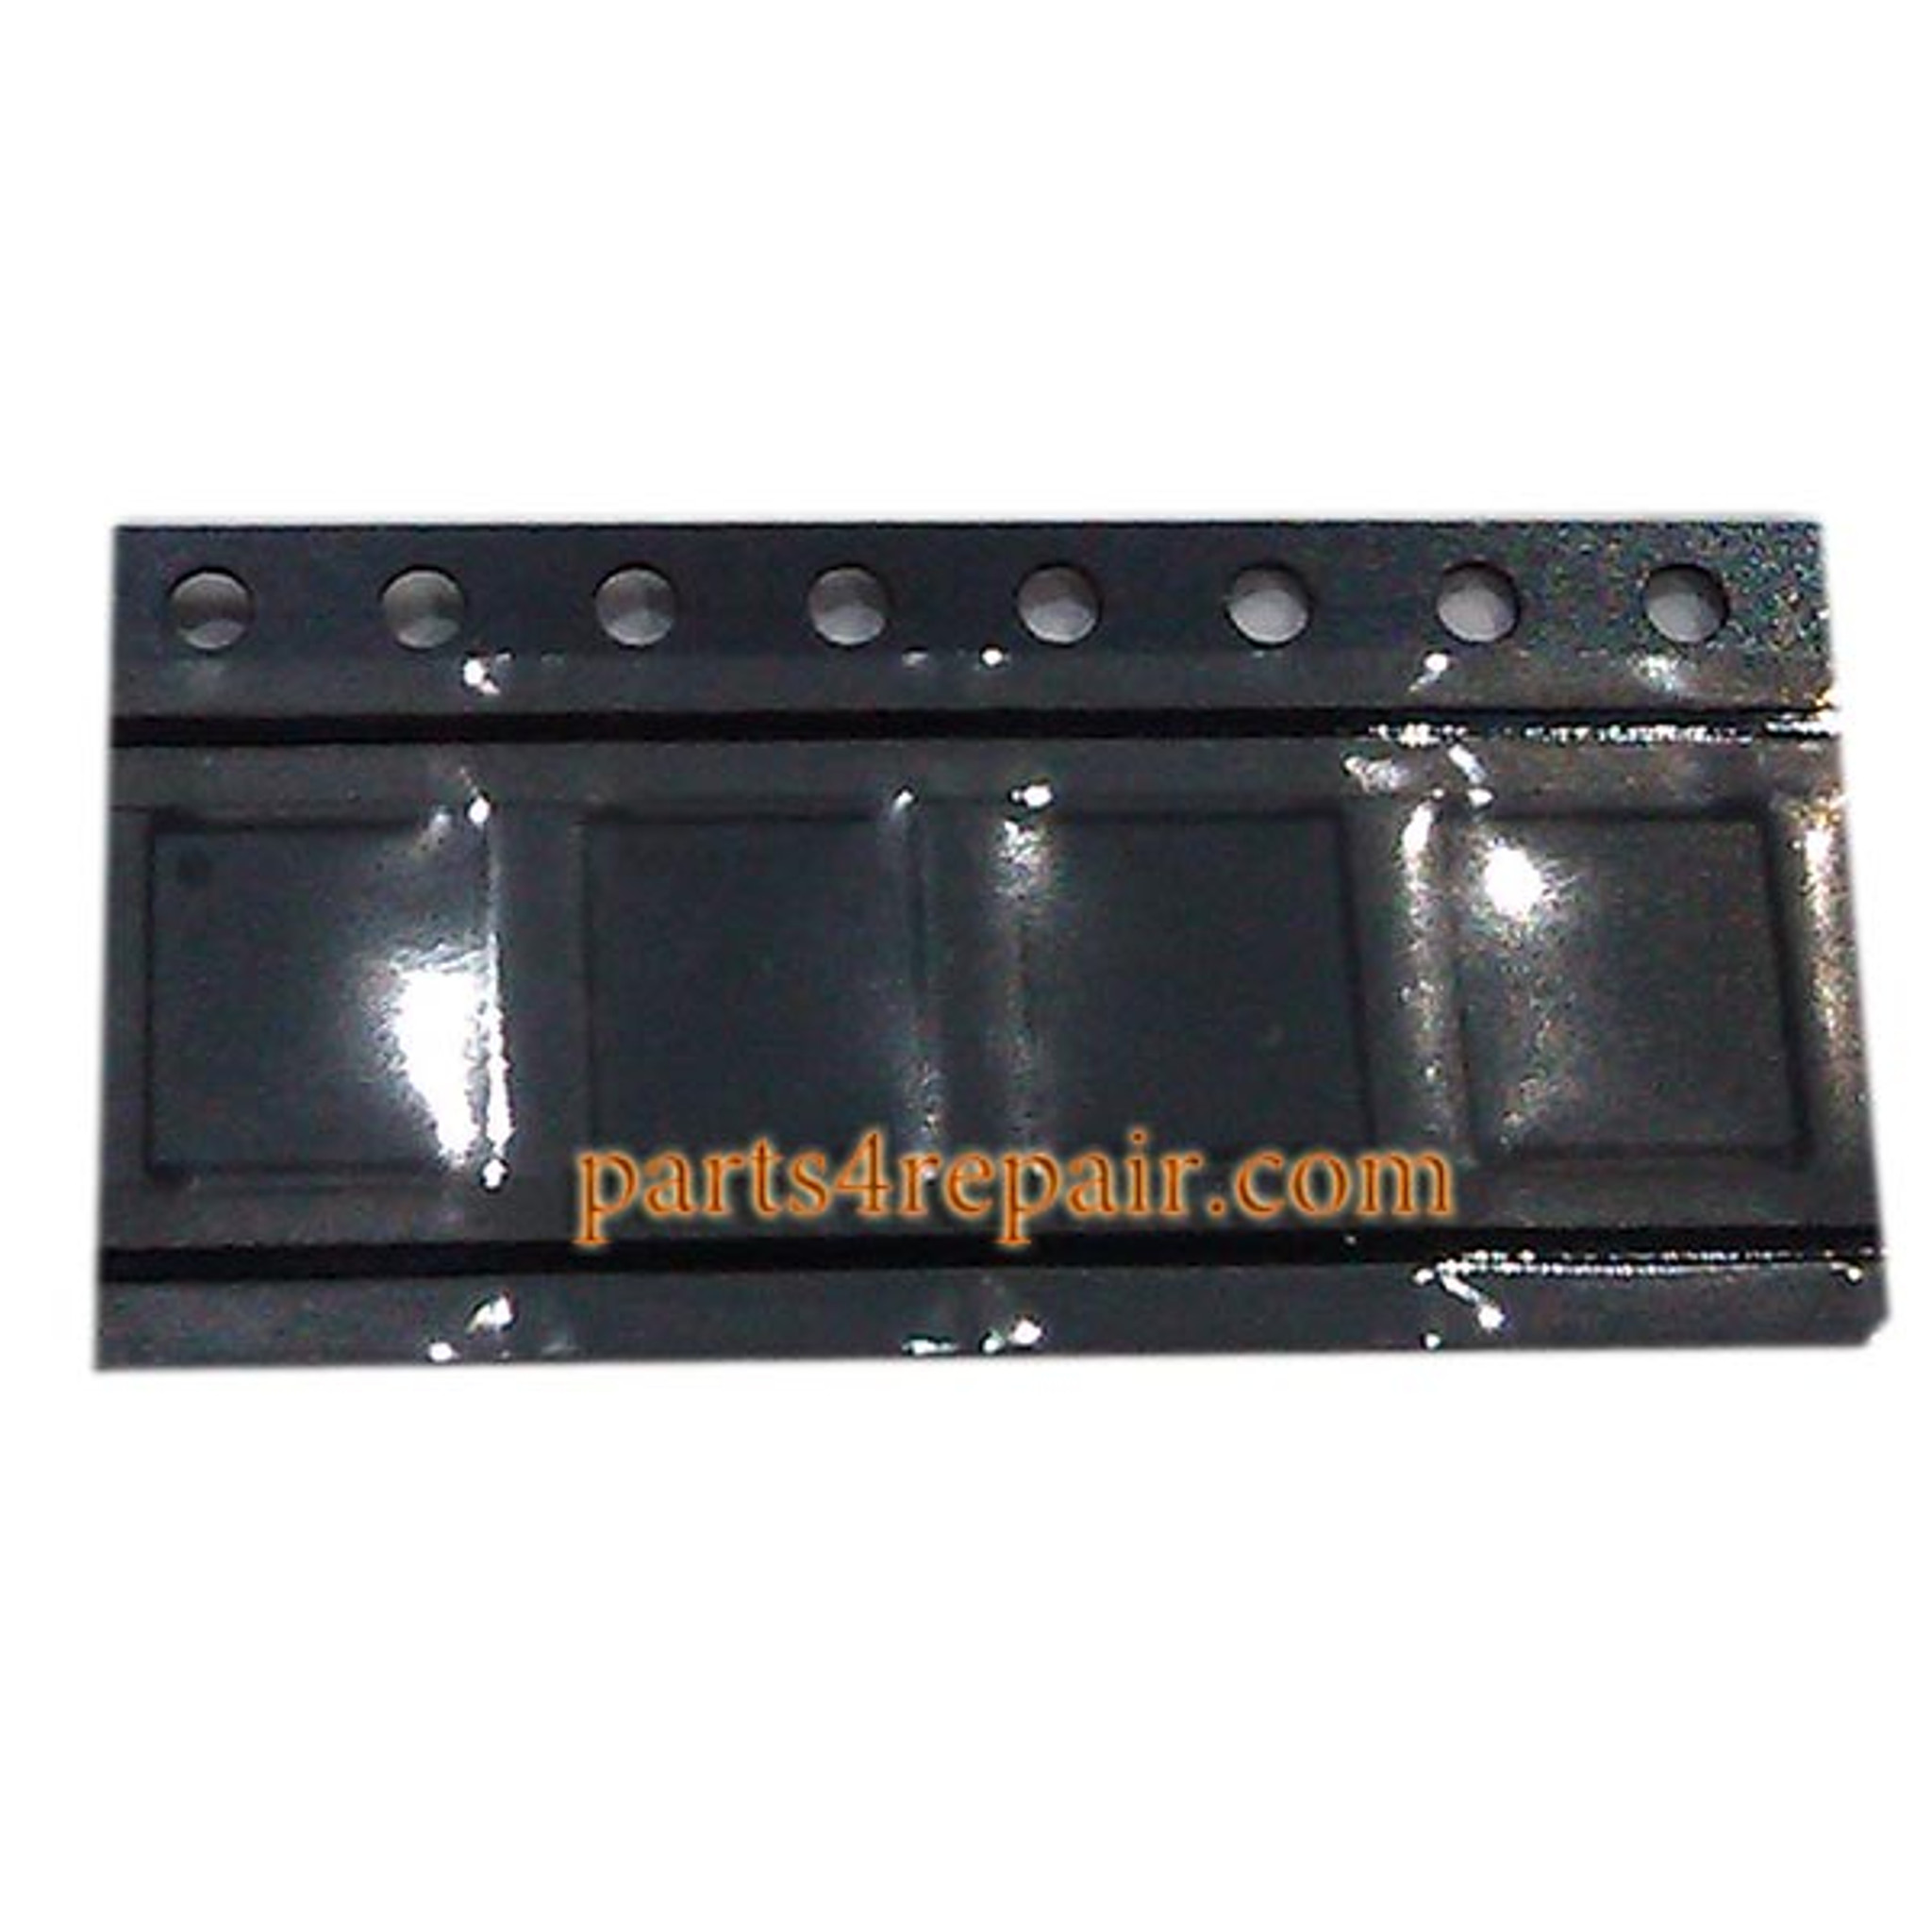 Power IC PM8941 for LG G3